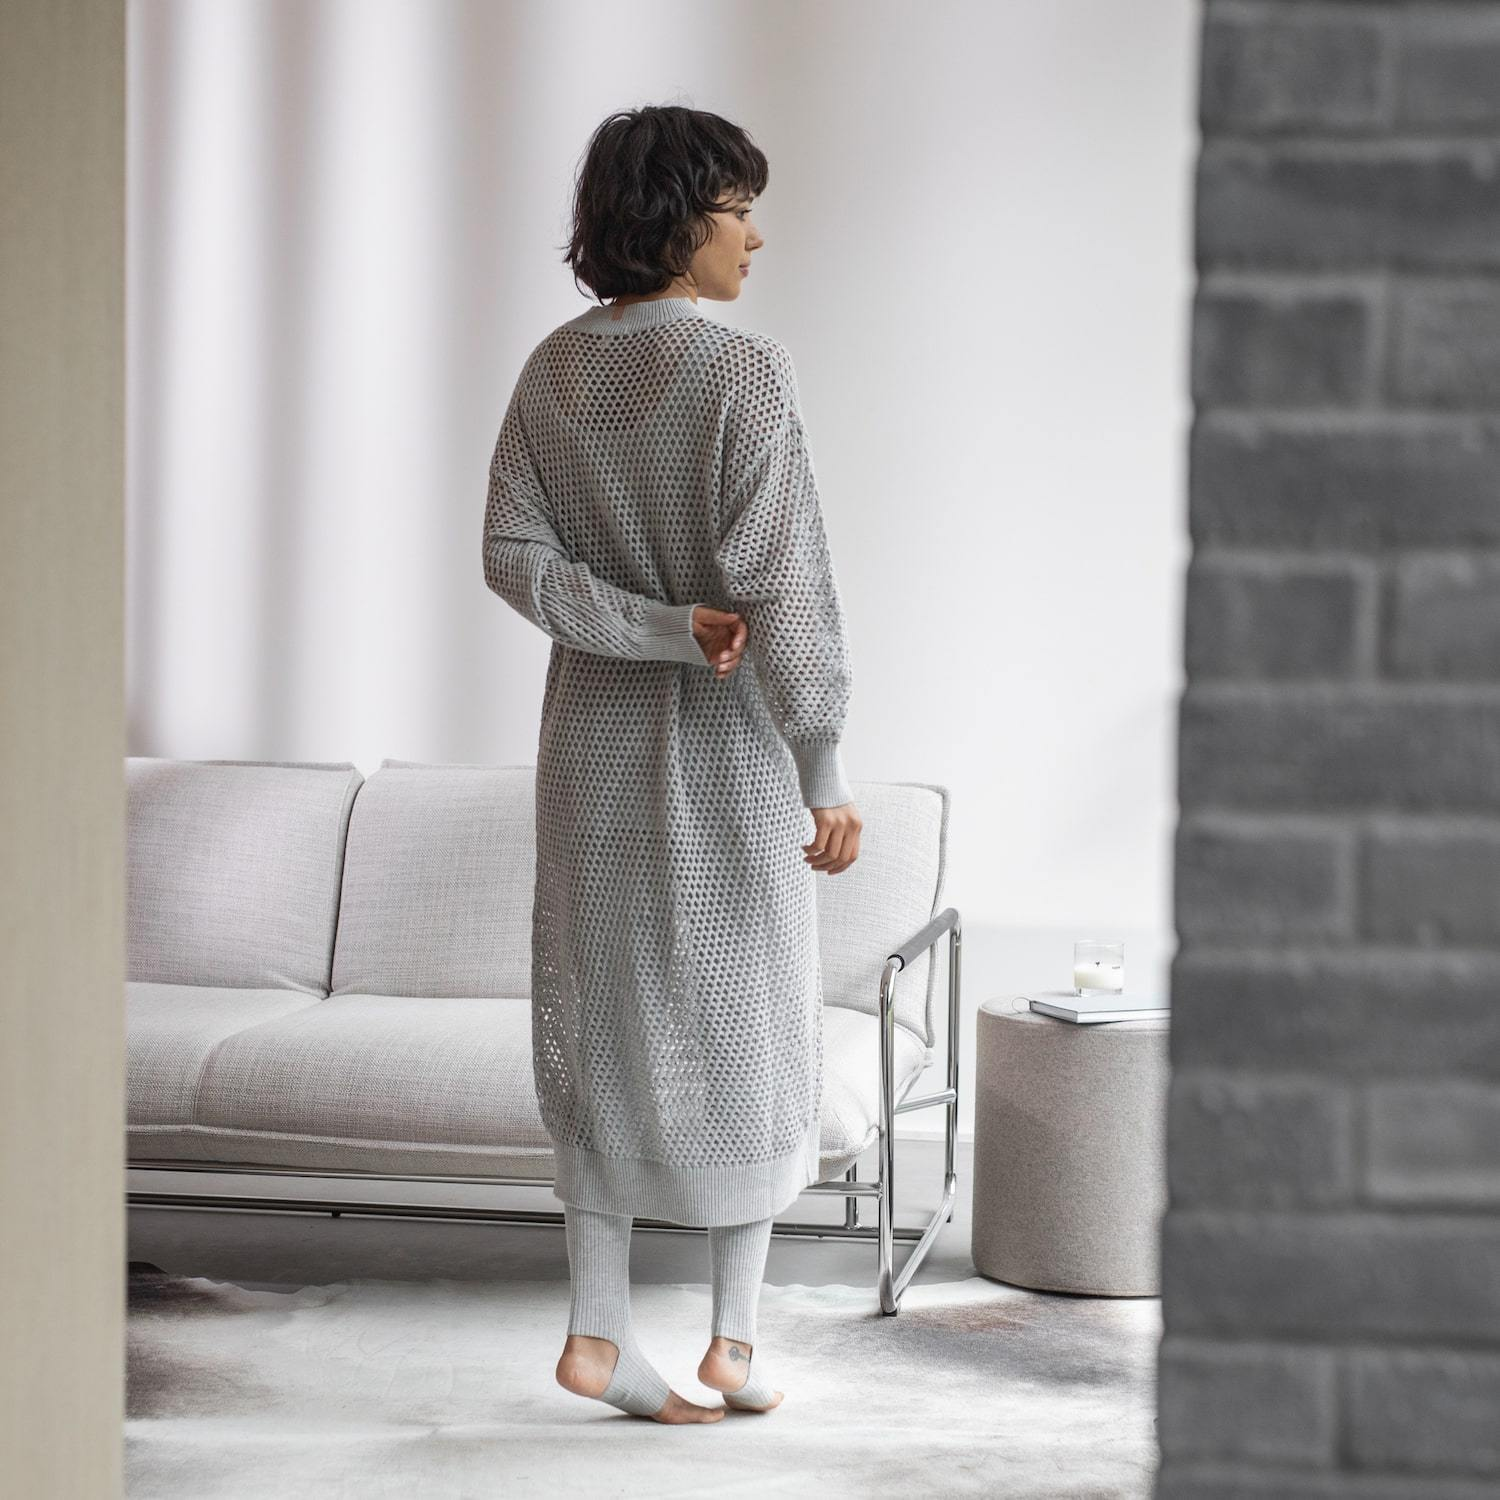 Lunya Sleepwear Cozy Cotton Silk Overlay Dress - #Chroma